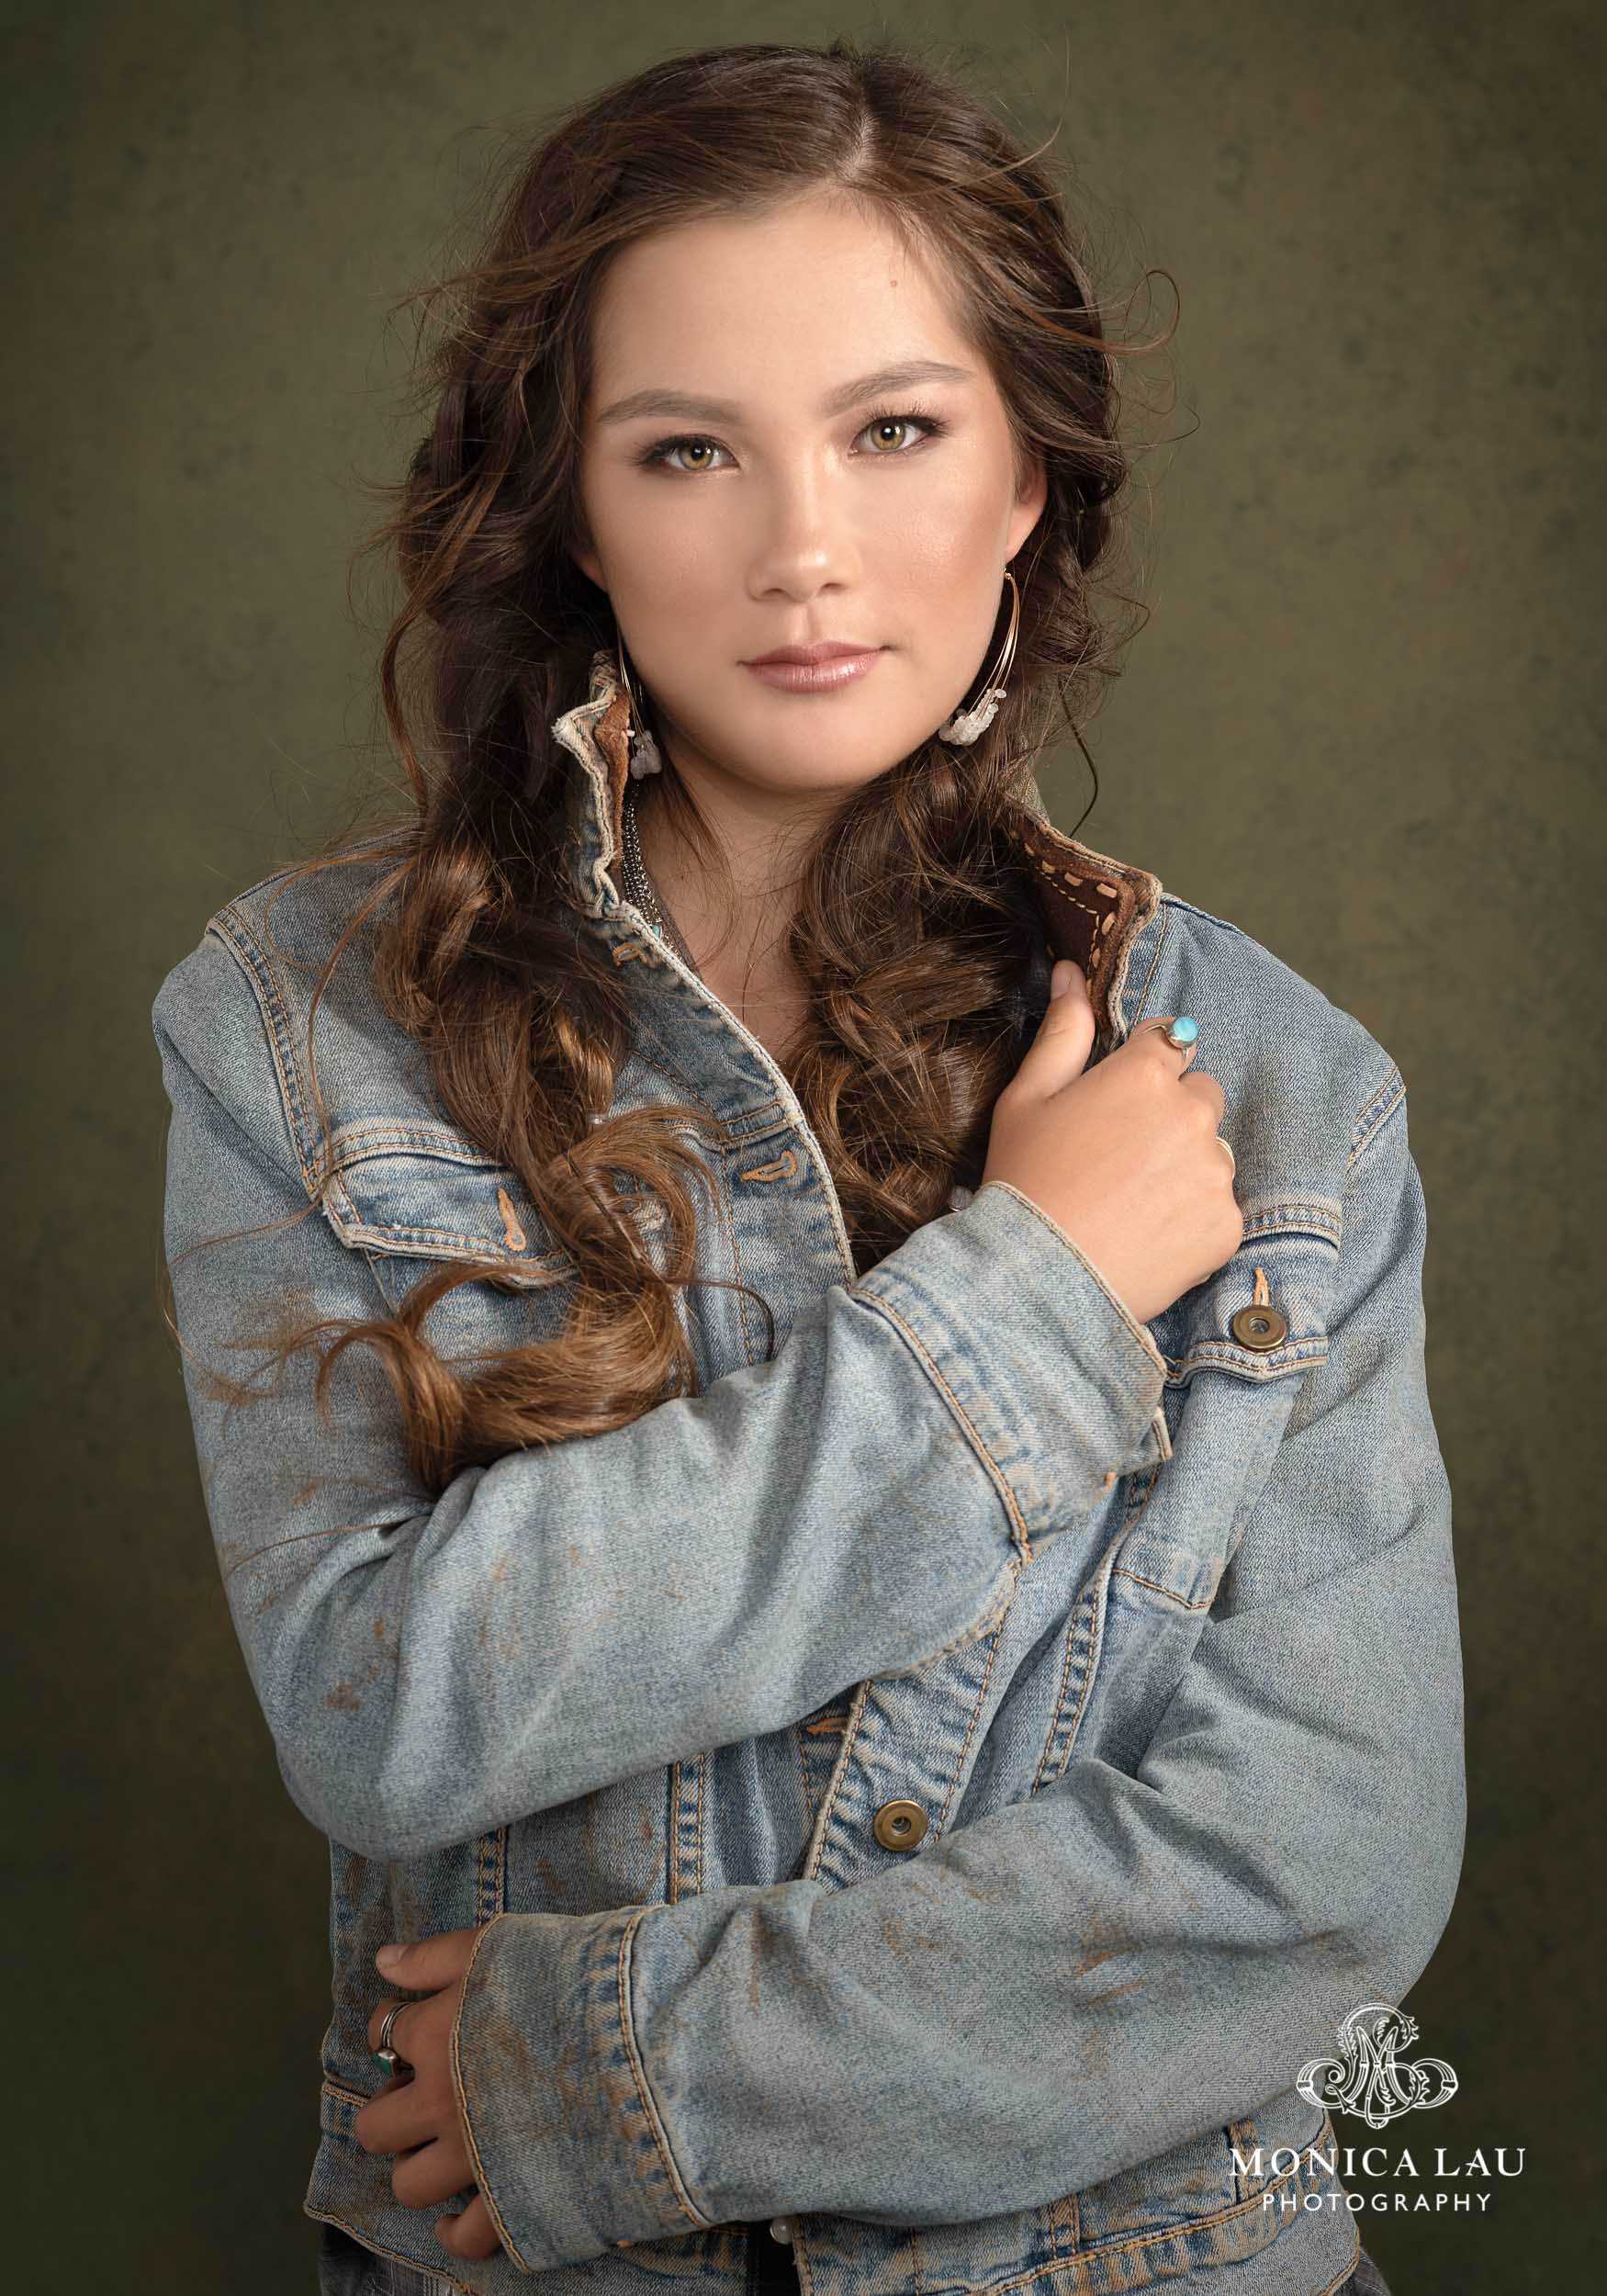 19MonicaLauPhotography-ShelbyWallenCowgirlPortraits0826-2.jpg